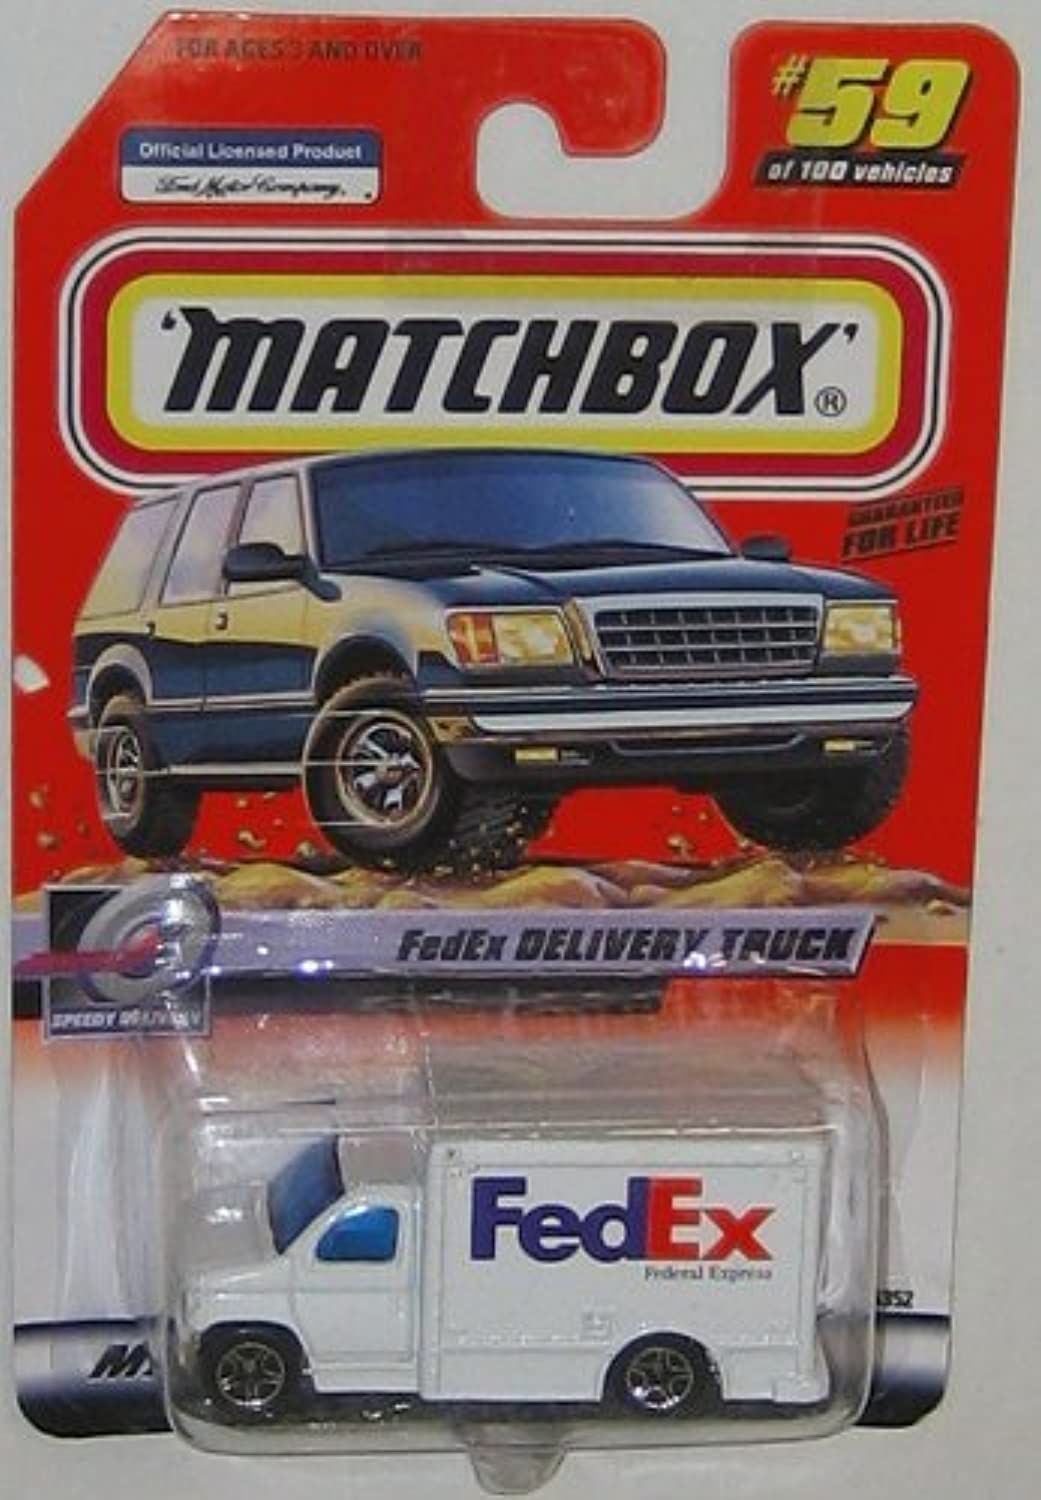 2000 MATCHBOX SPEEDY DELIVERY 59 OF 100 FEDEX DELIVERY TRUCK by Matchbox